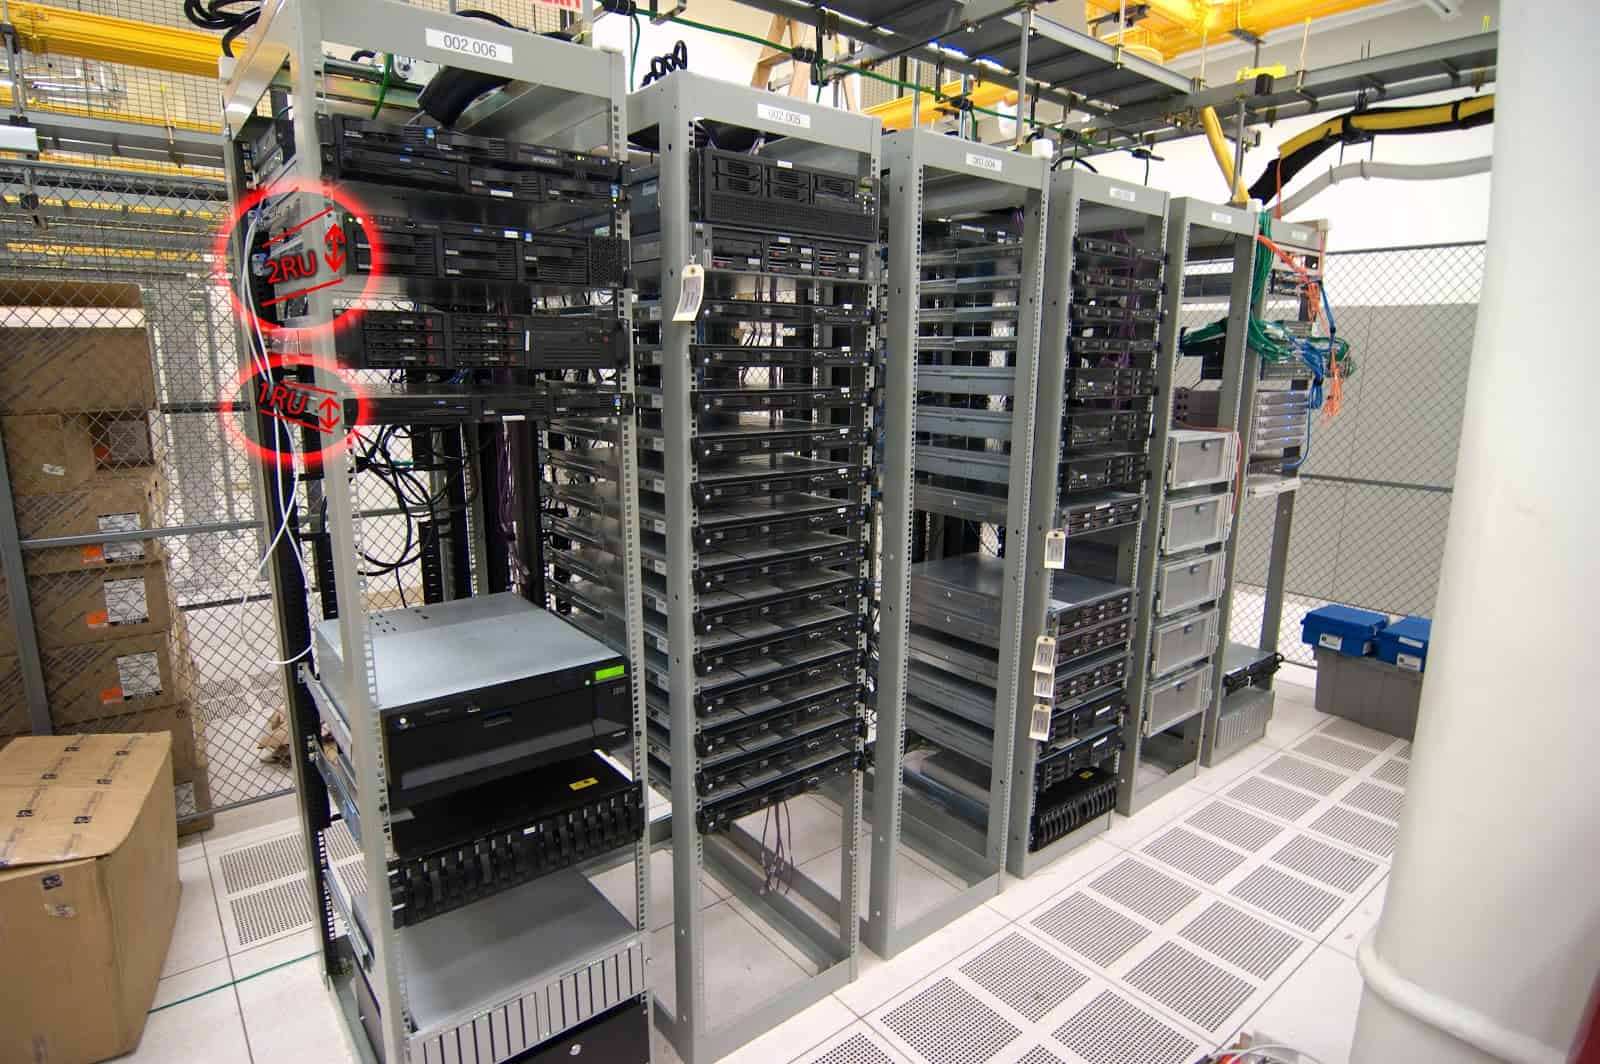 A standard server rack. Check the red circles to see how the vertical  height system works [3]